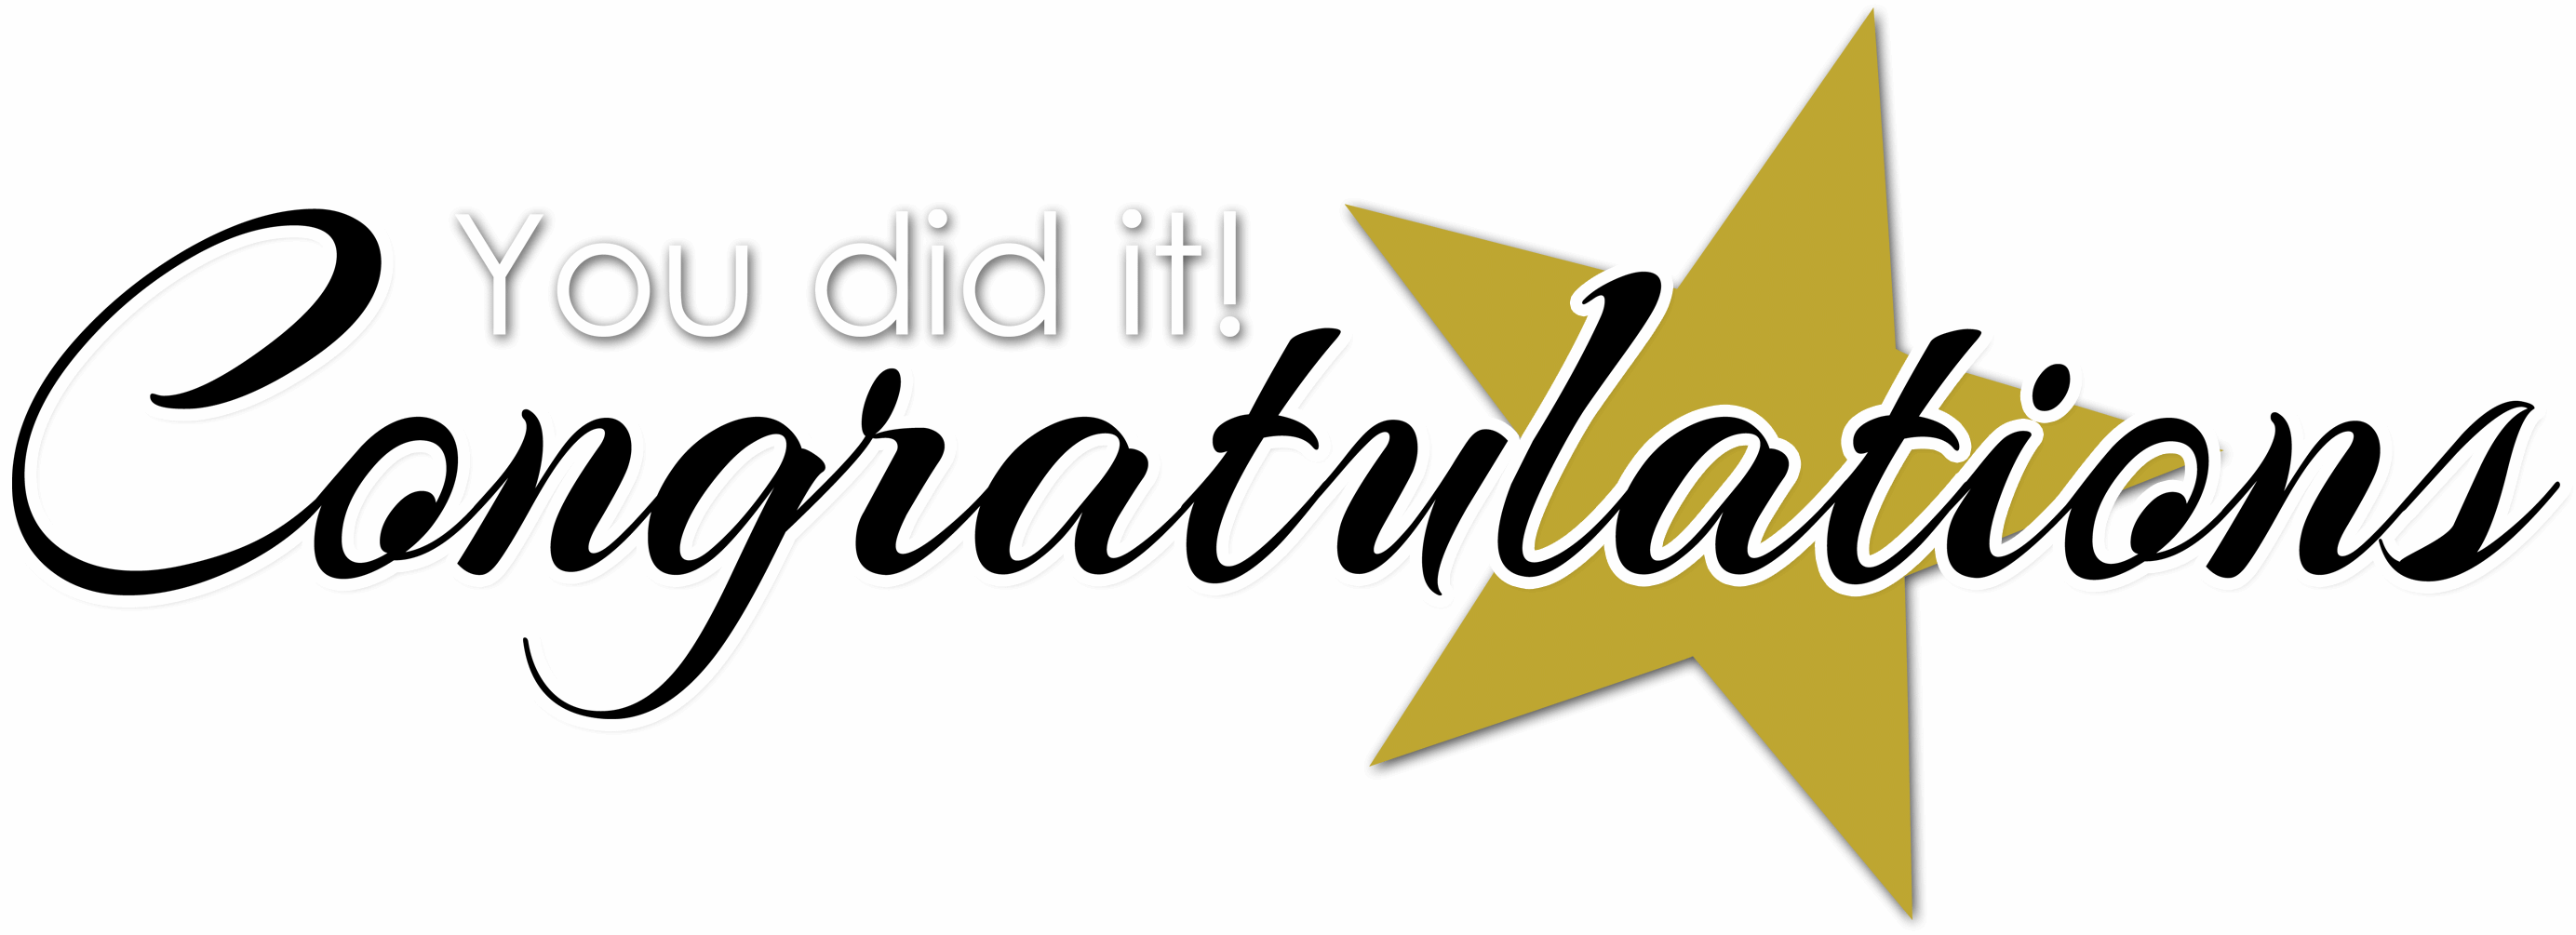 Clip Art Clipart Congratulations congratulations clipart you did it header image